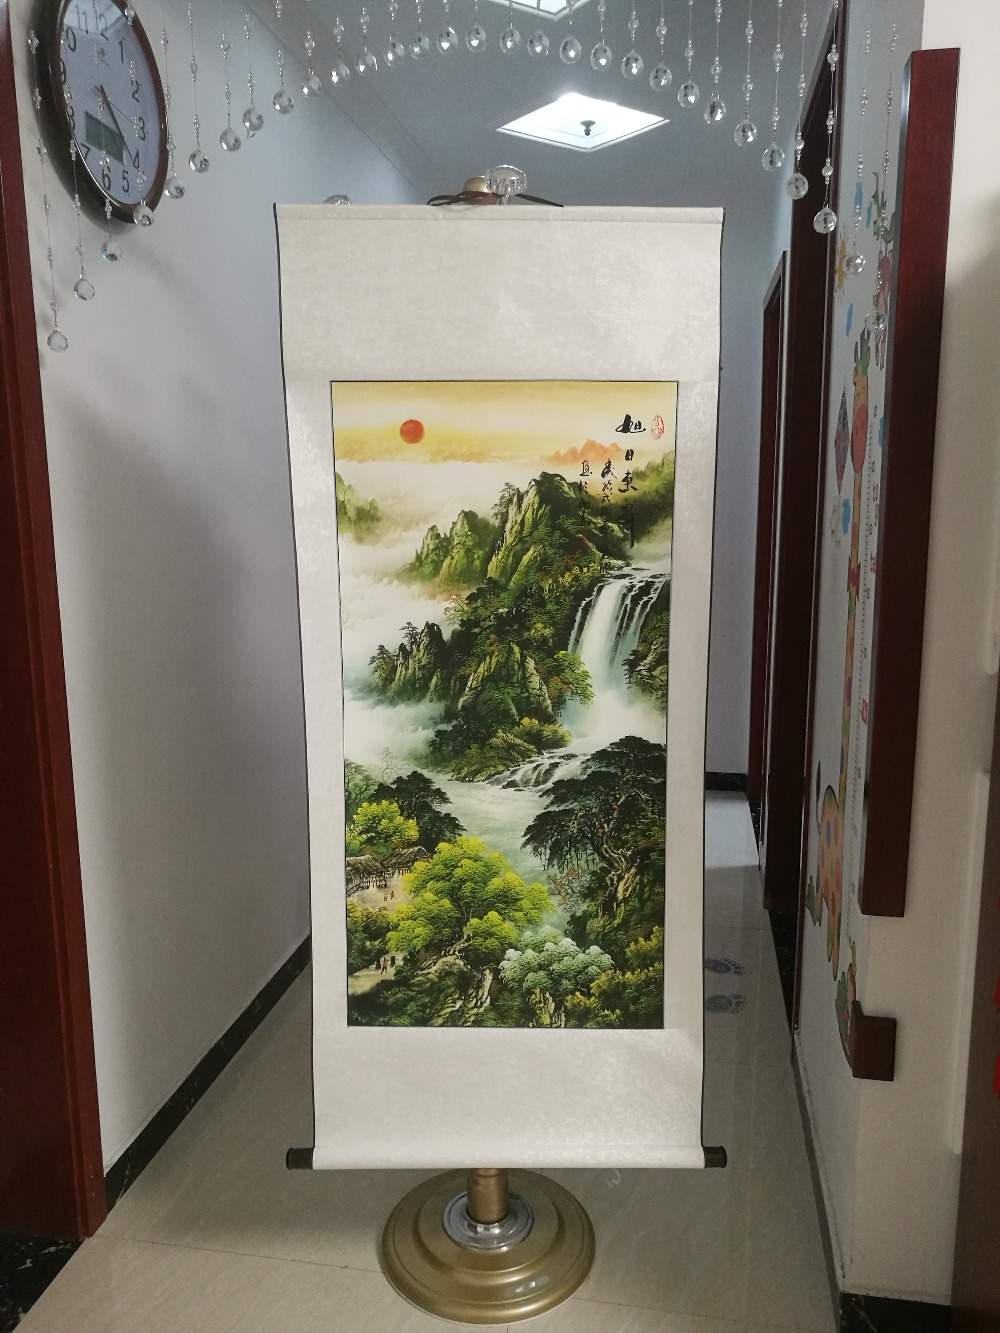 140CM Large 2020 TOP business gift # Home office WALL Decorative art The red sun rose Auspicious landscape FENG SHUI painting